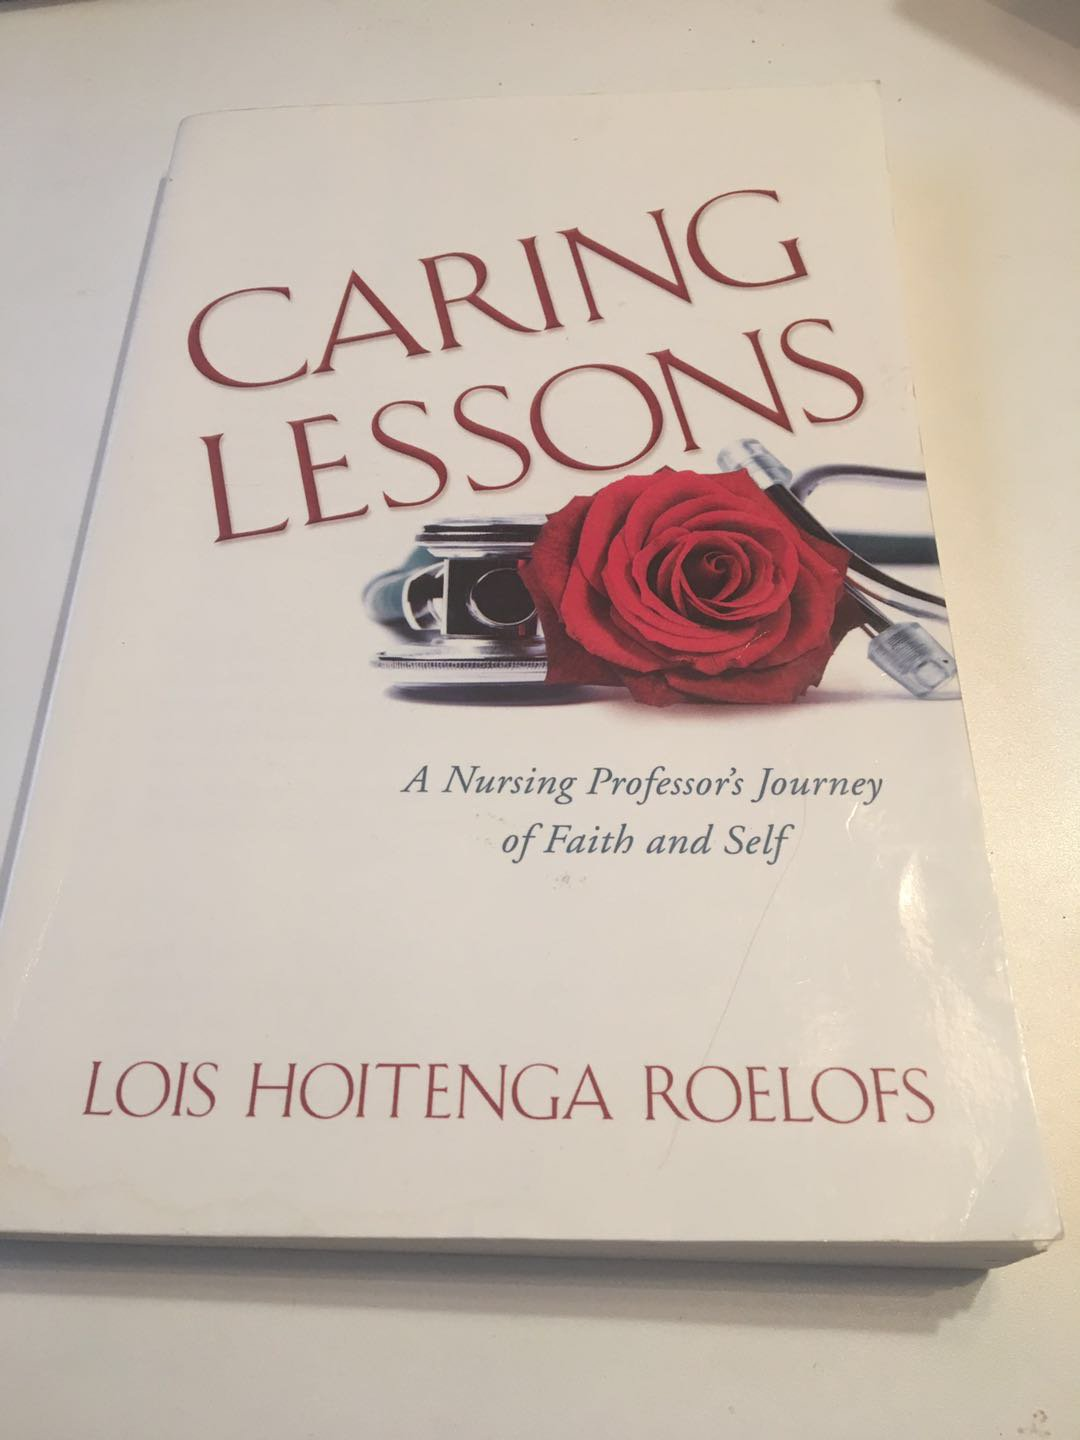 Caring Lessons: A Nursing Professor�s Journey of Faith and Self 2010 by Lois Hoitenga Roelofs